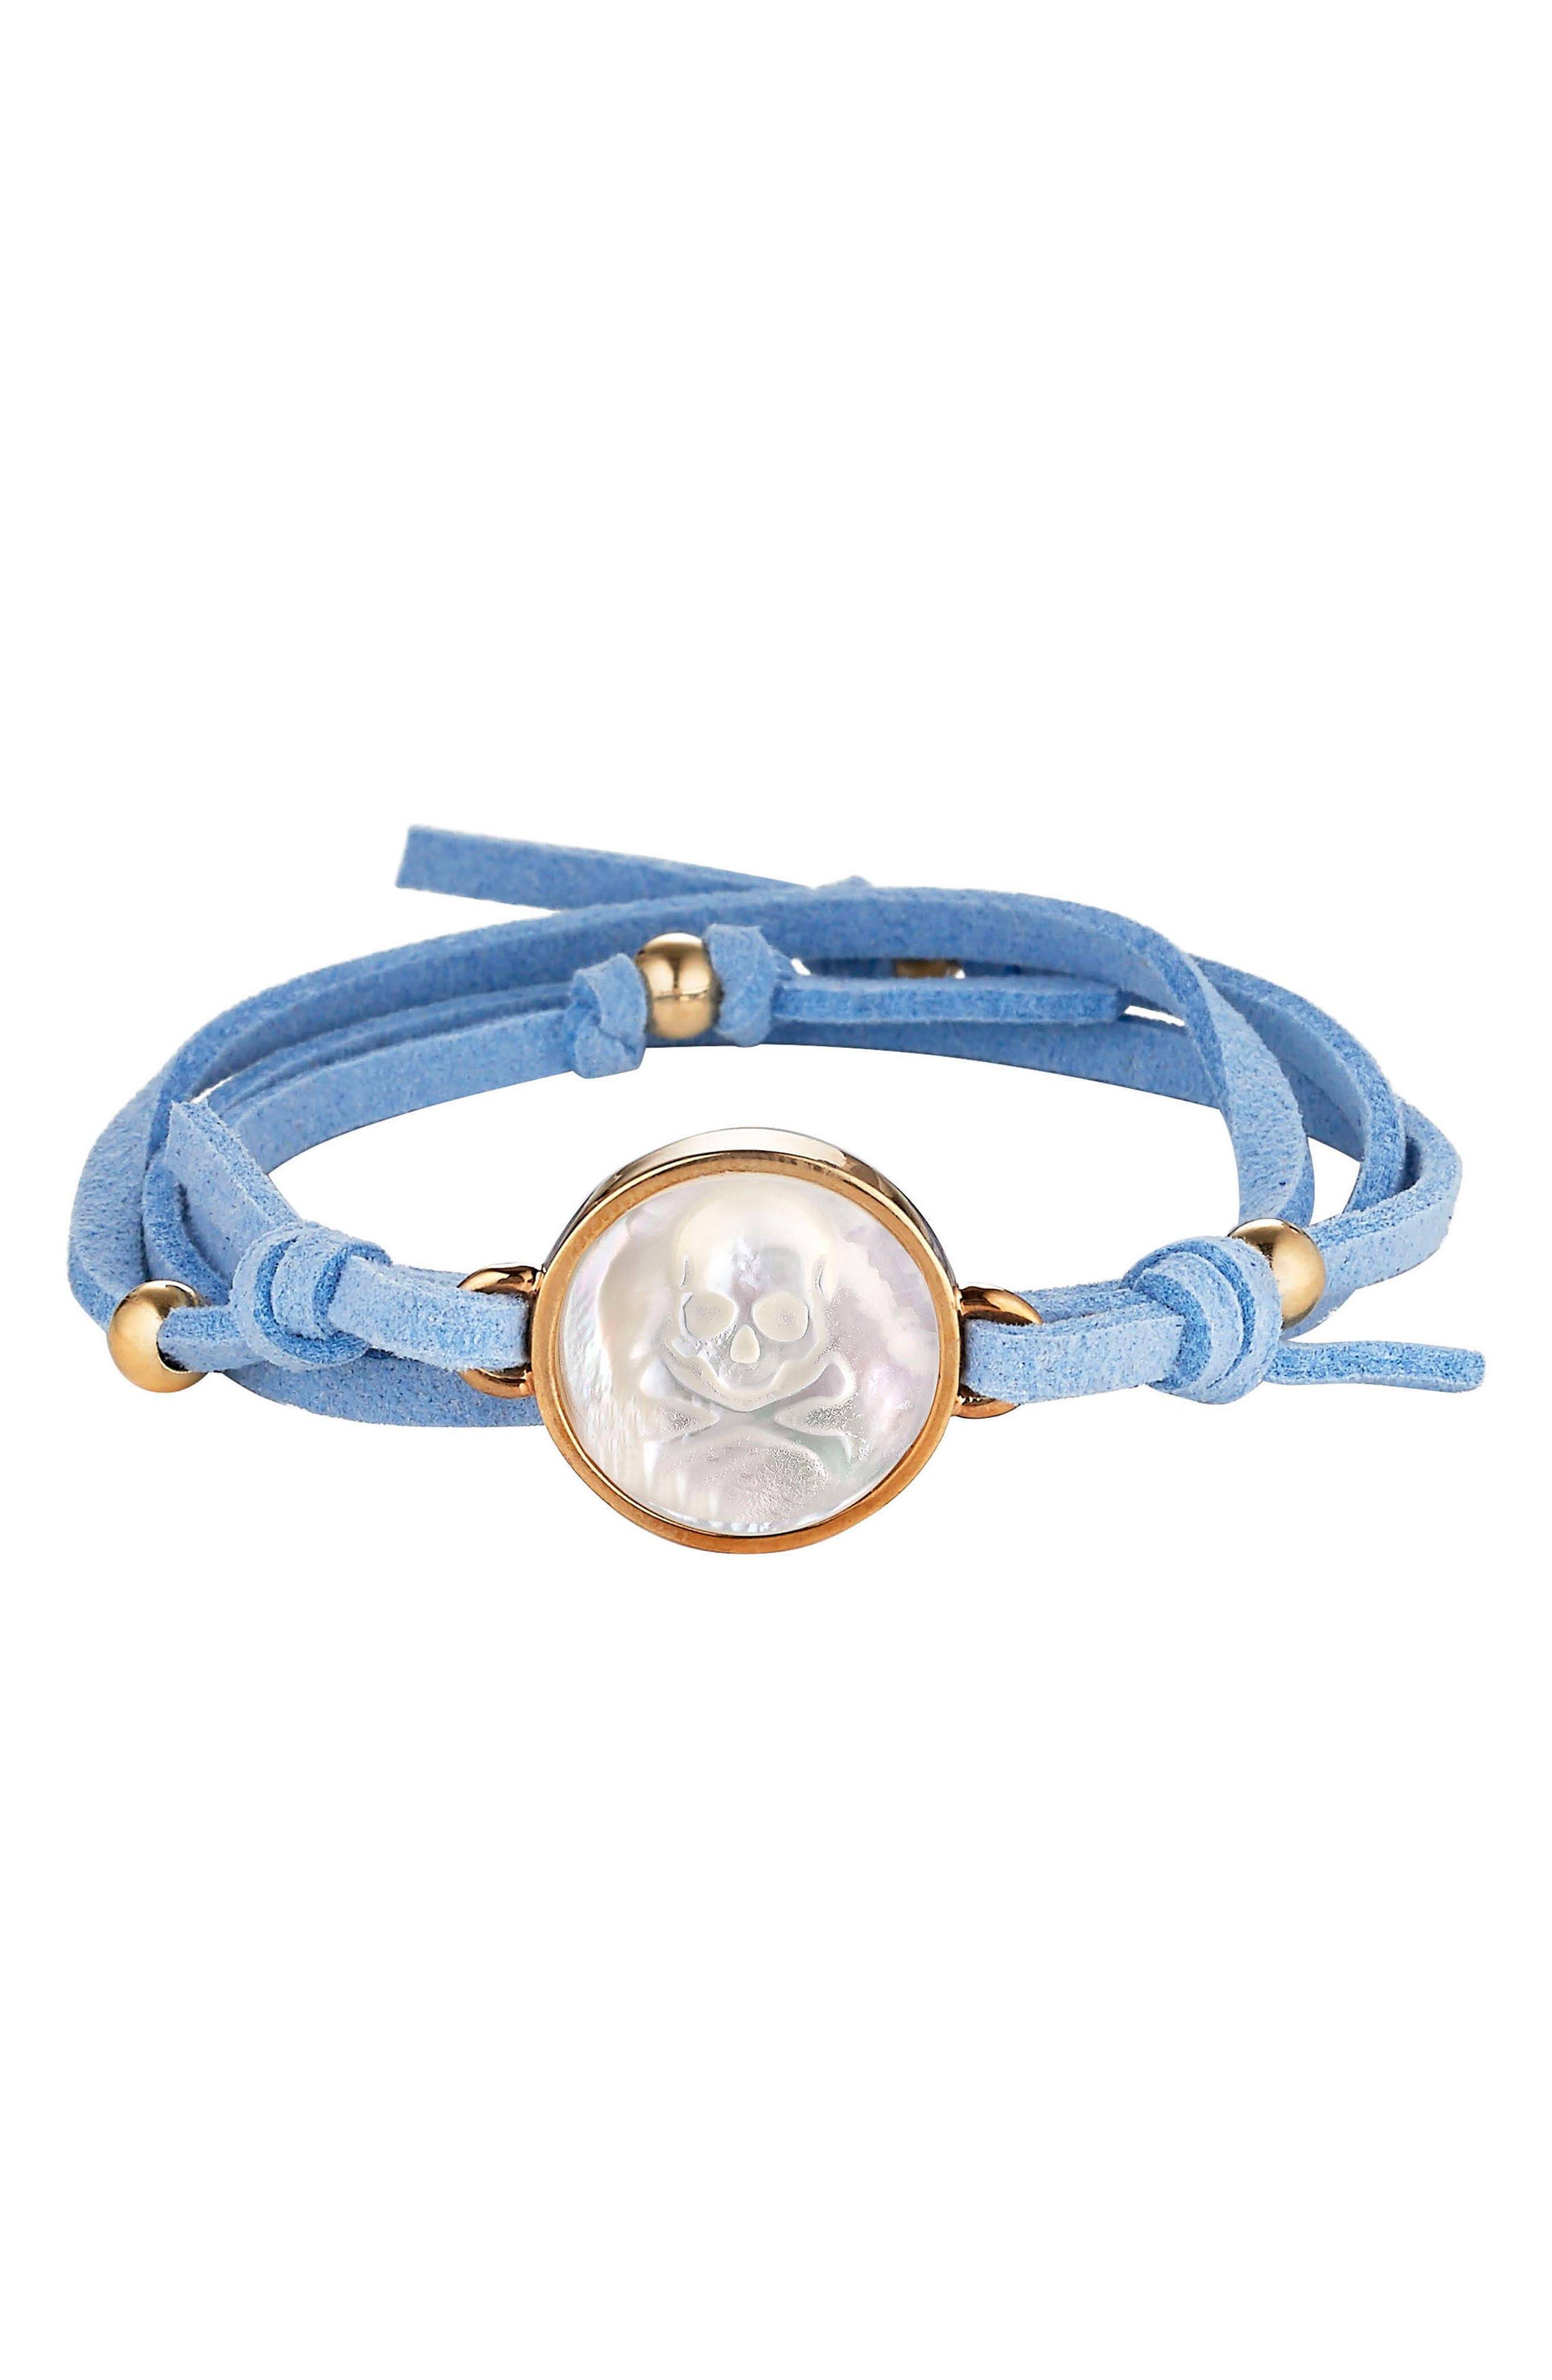 Skull & Bones Suede Wrap Bracelet,                             Main thumbnail 1, color,                             Light Blue Skull